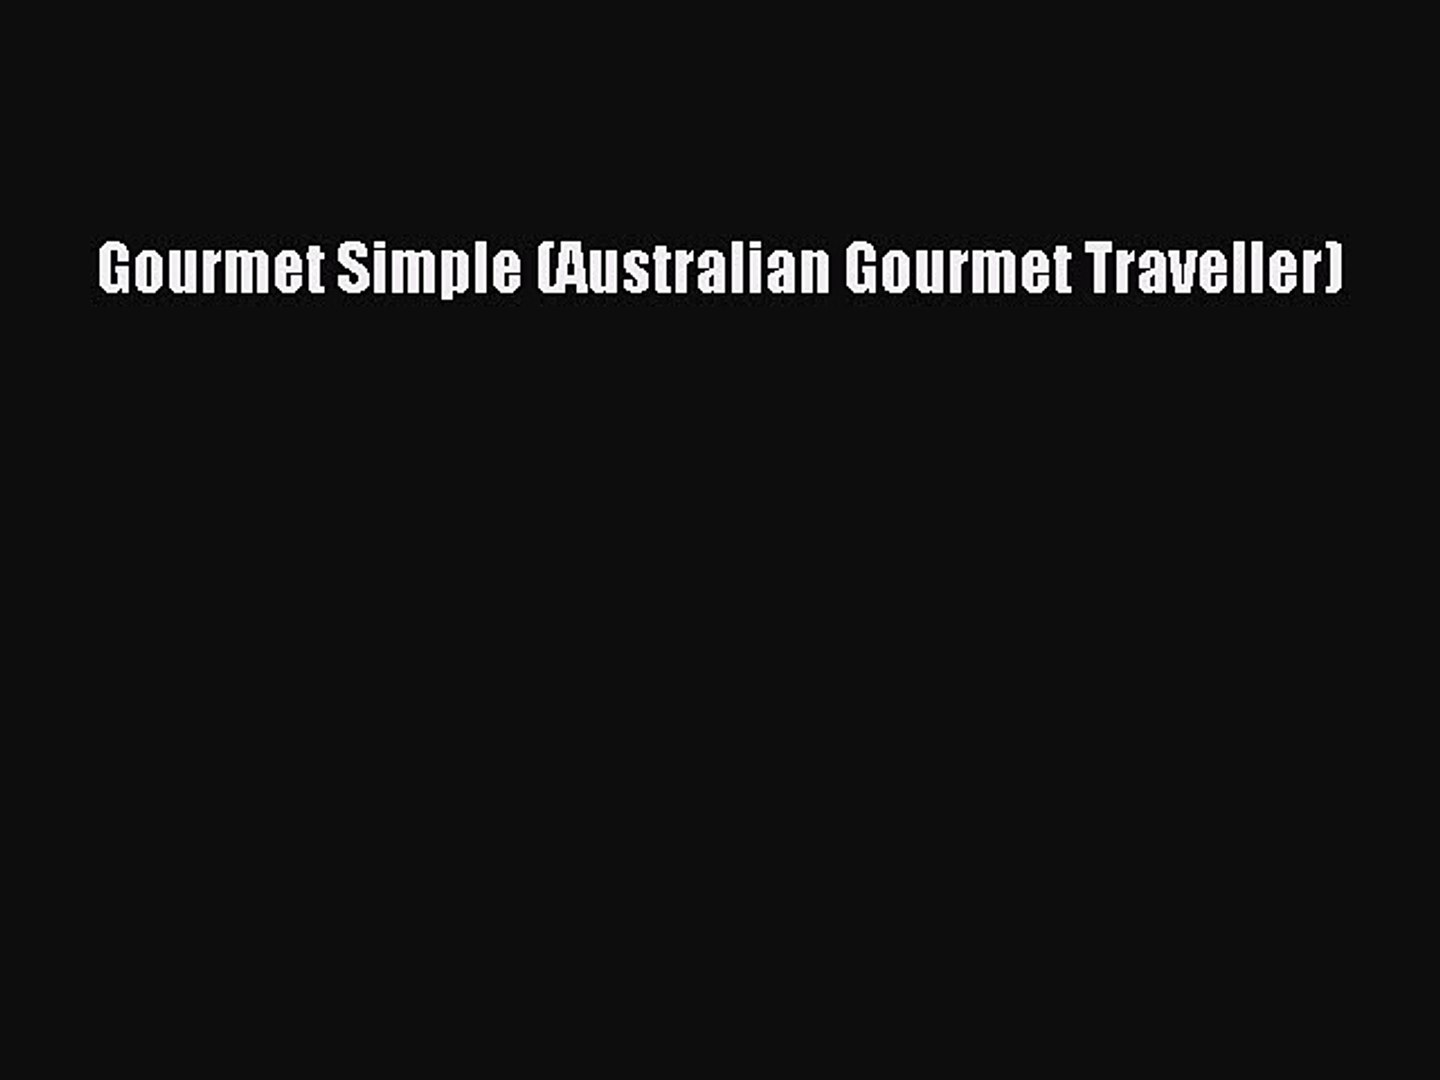 Read Gourmet Simple (Australian Gourmet Traveller) Ebook Free